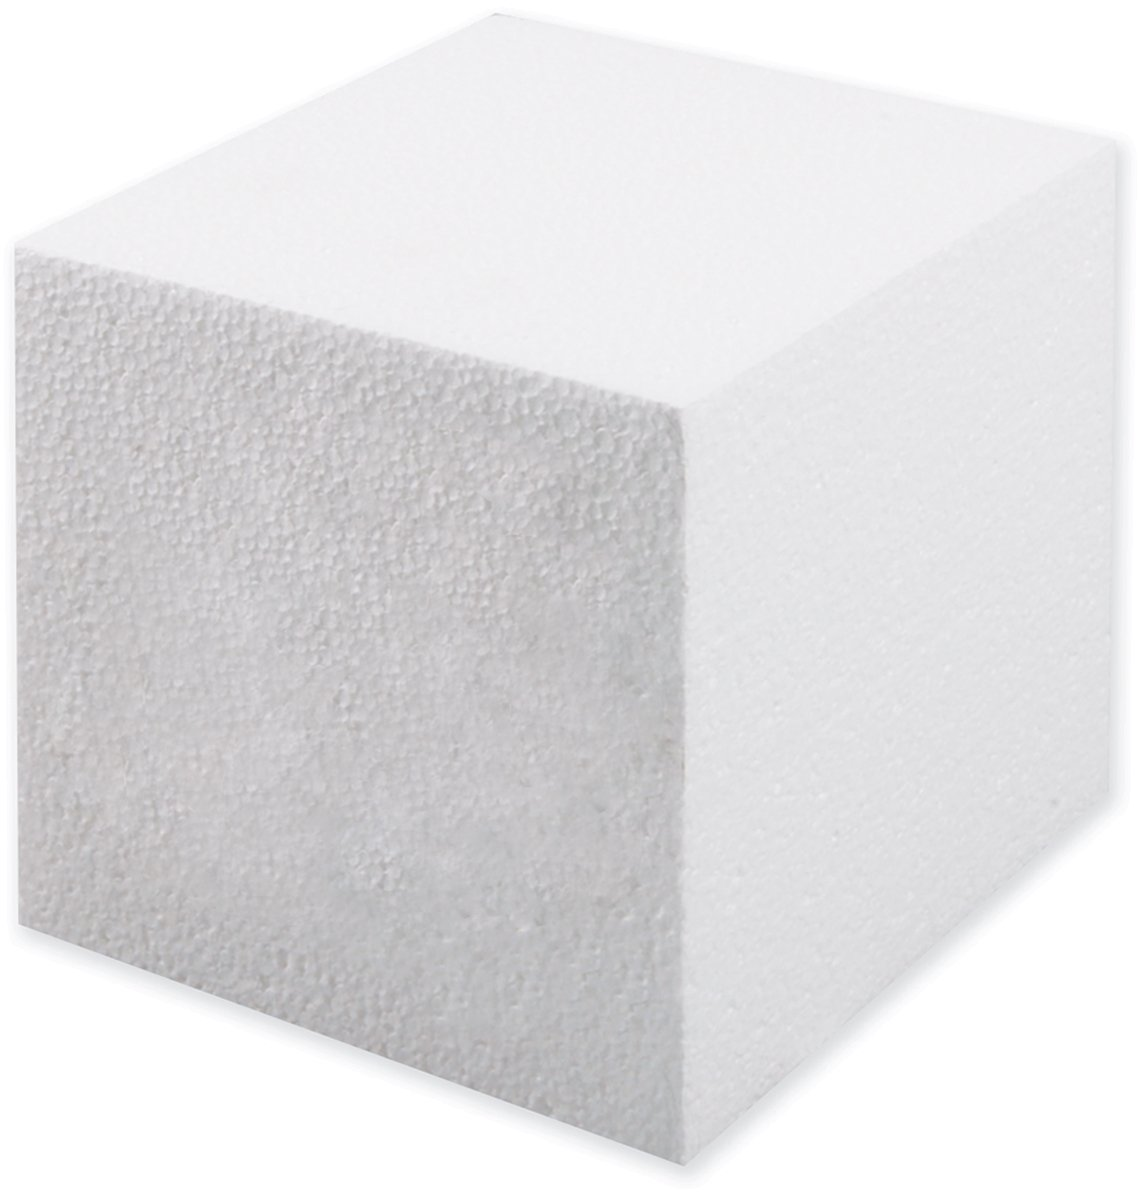 Smoothfoam Cube Crafts Foam for Modeling, 5-Inch, White Notions - In Network RT924